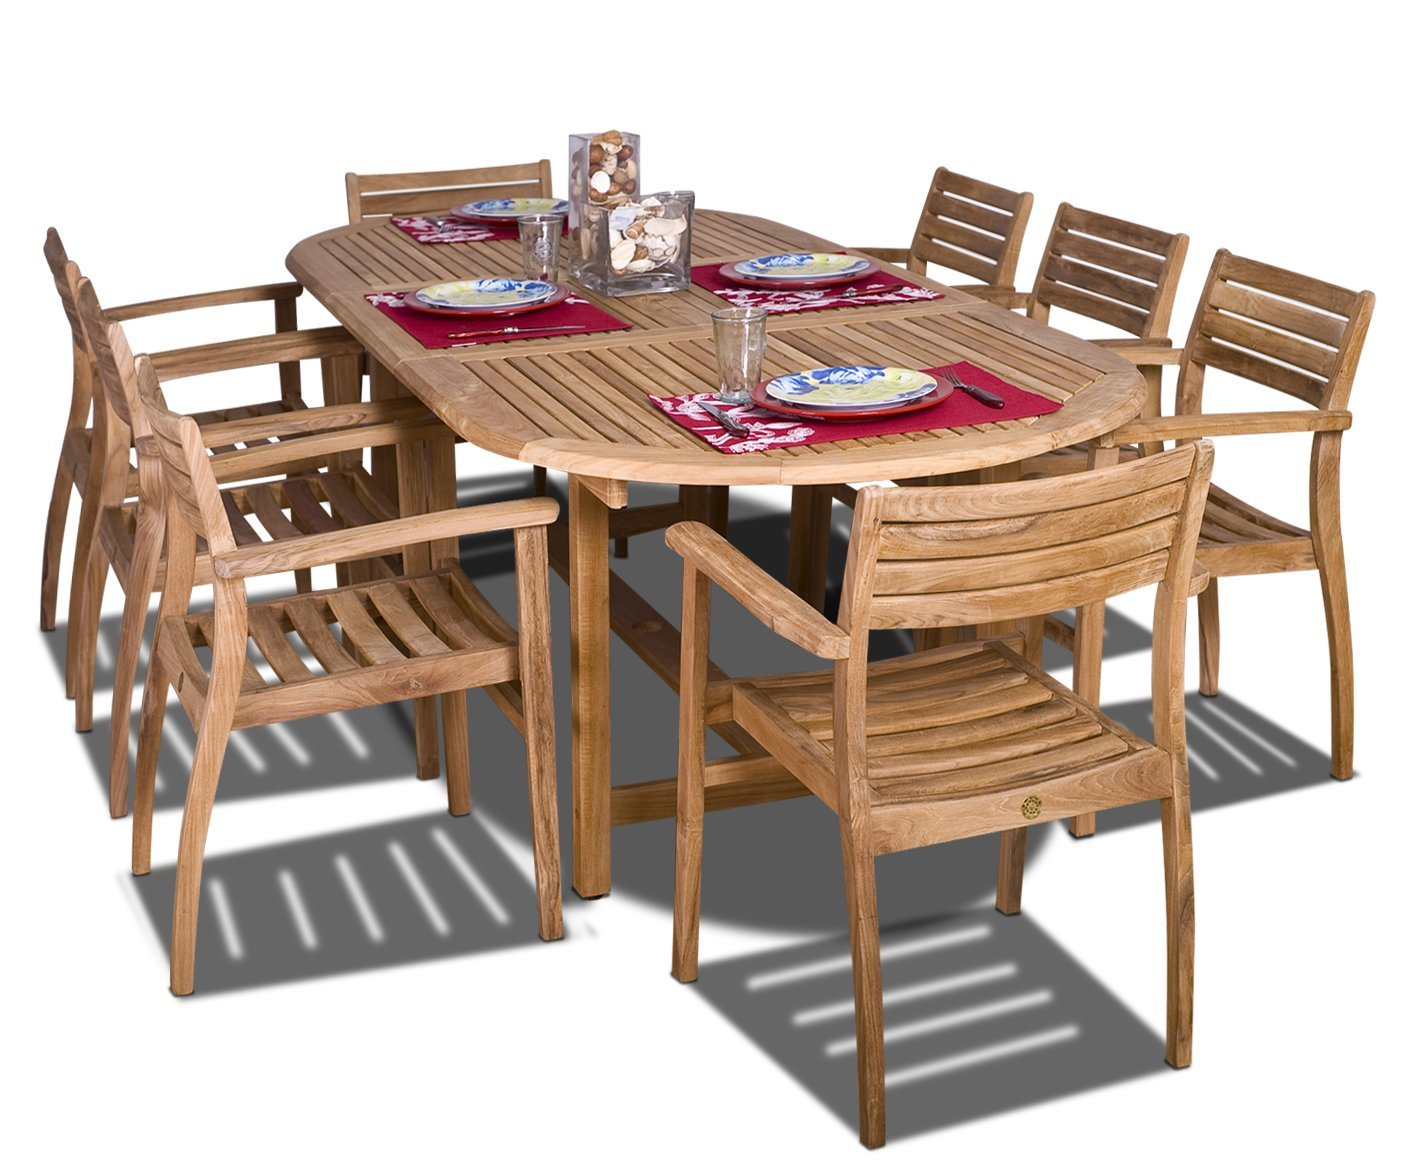 amazon com amazonia teak coventry 9 piece teak oval dining set amazon com amazonia teak coventry 9 piece teak oval dining set patio lawn garden